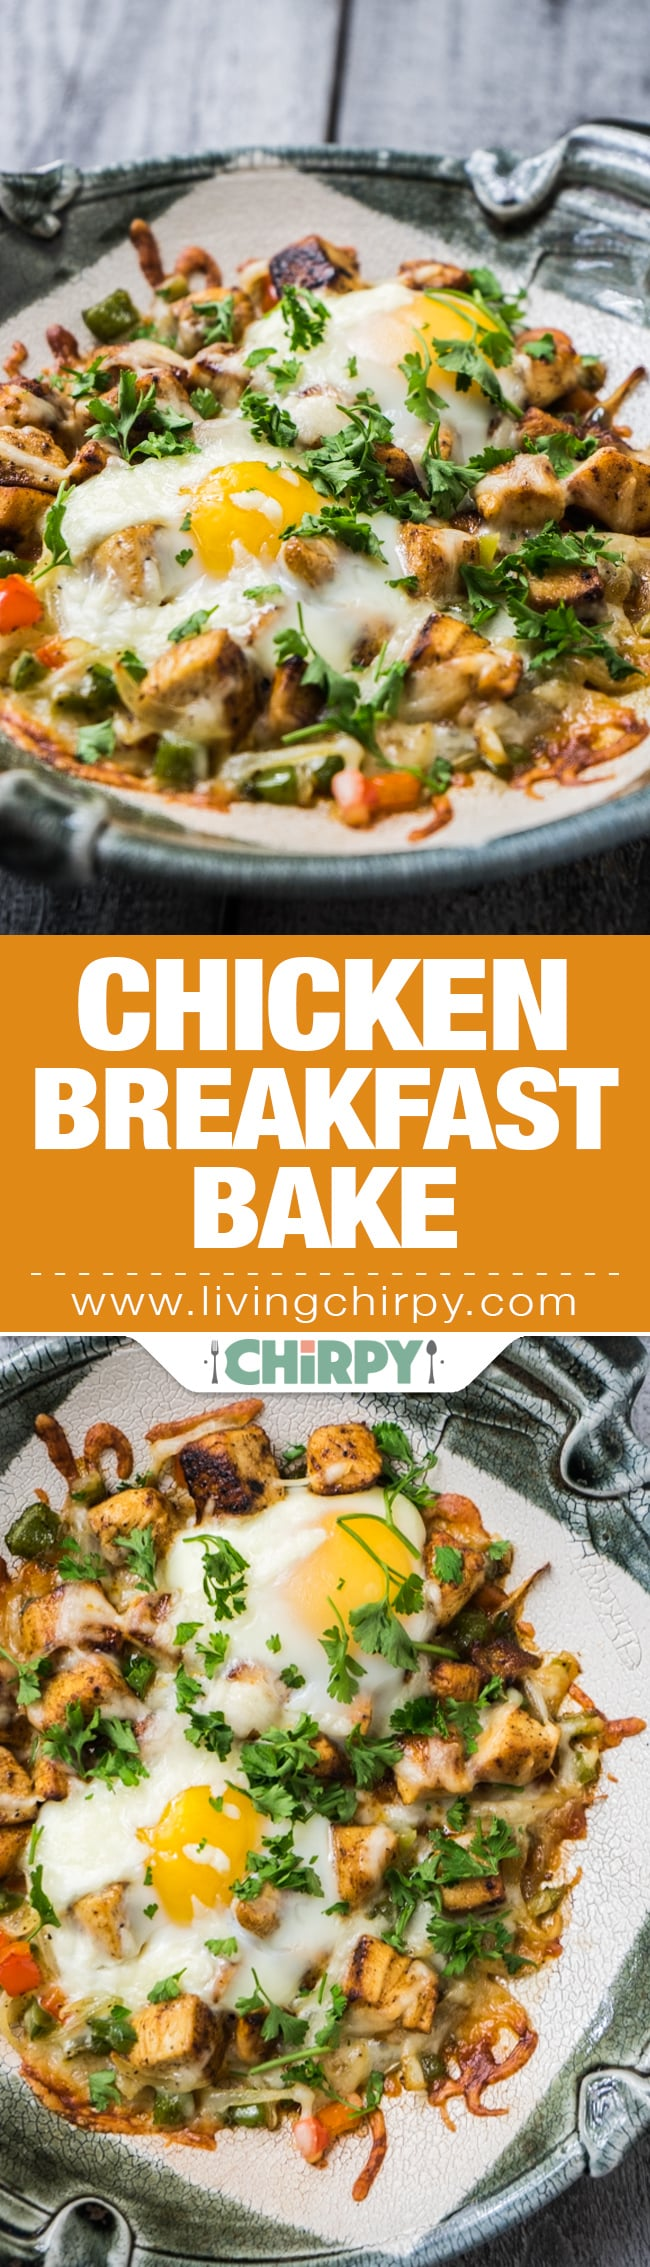 chicken-breakfast-bake-pin 3